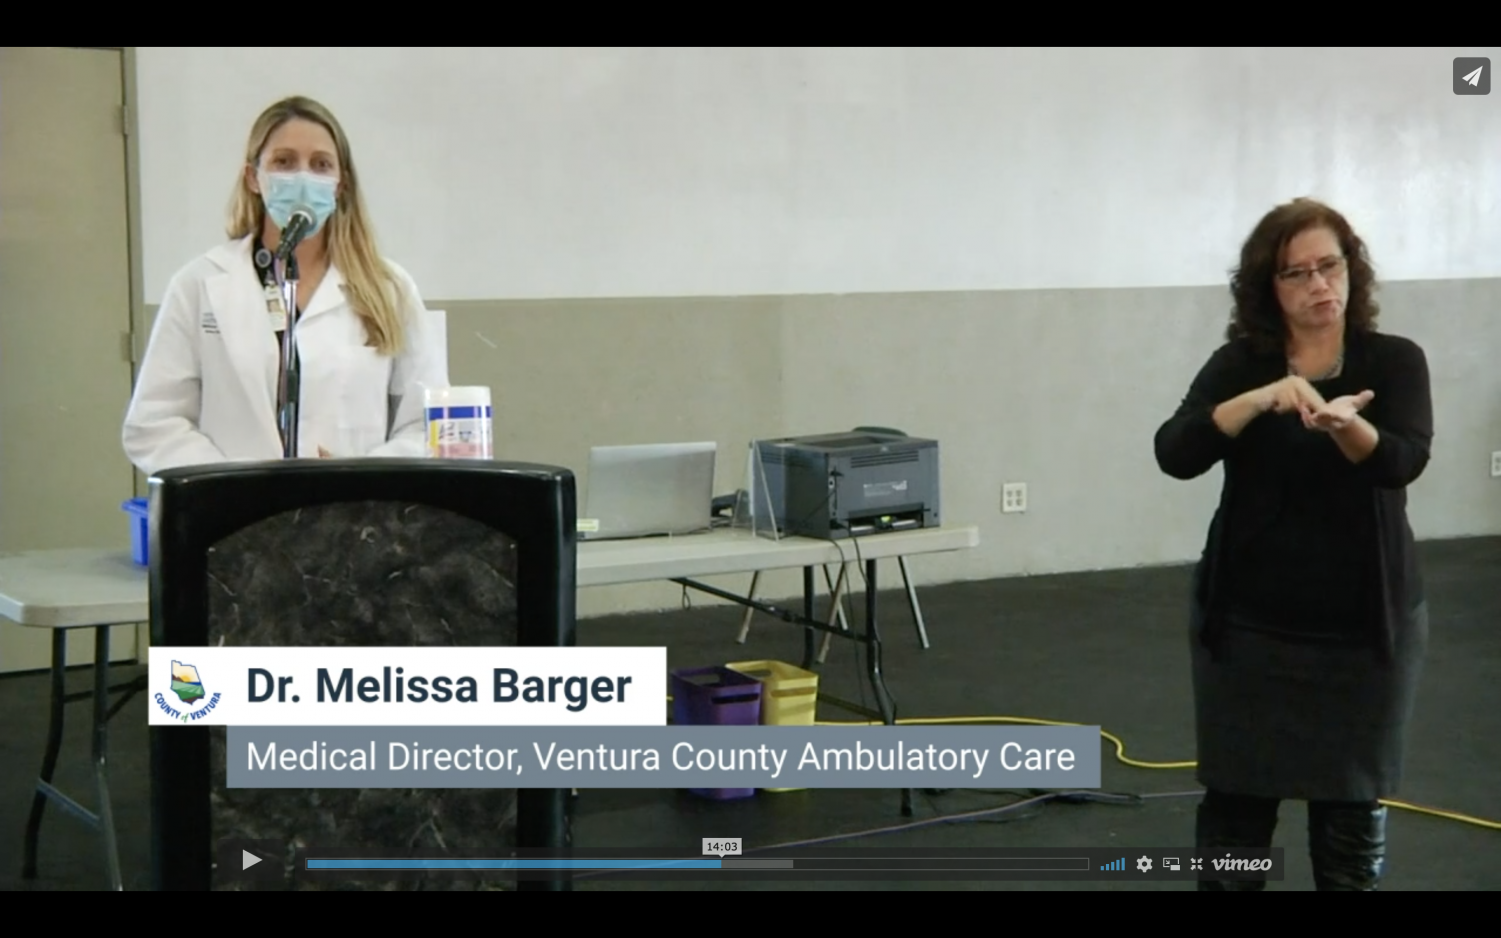 Melissa Barger, medial director, speak from a health care providers' perspective to remind everyone the importance of ongoing safety during the pandemic